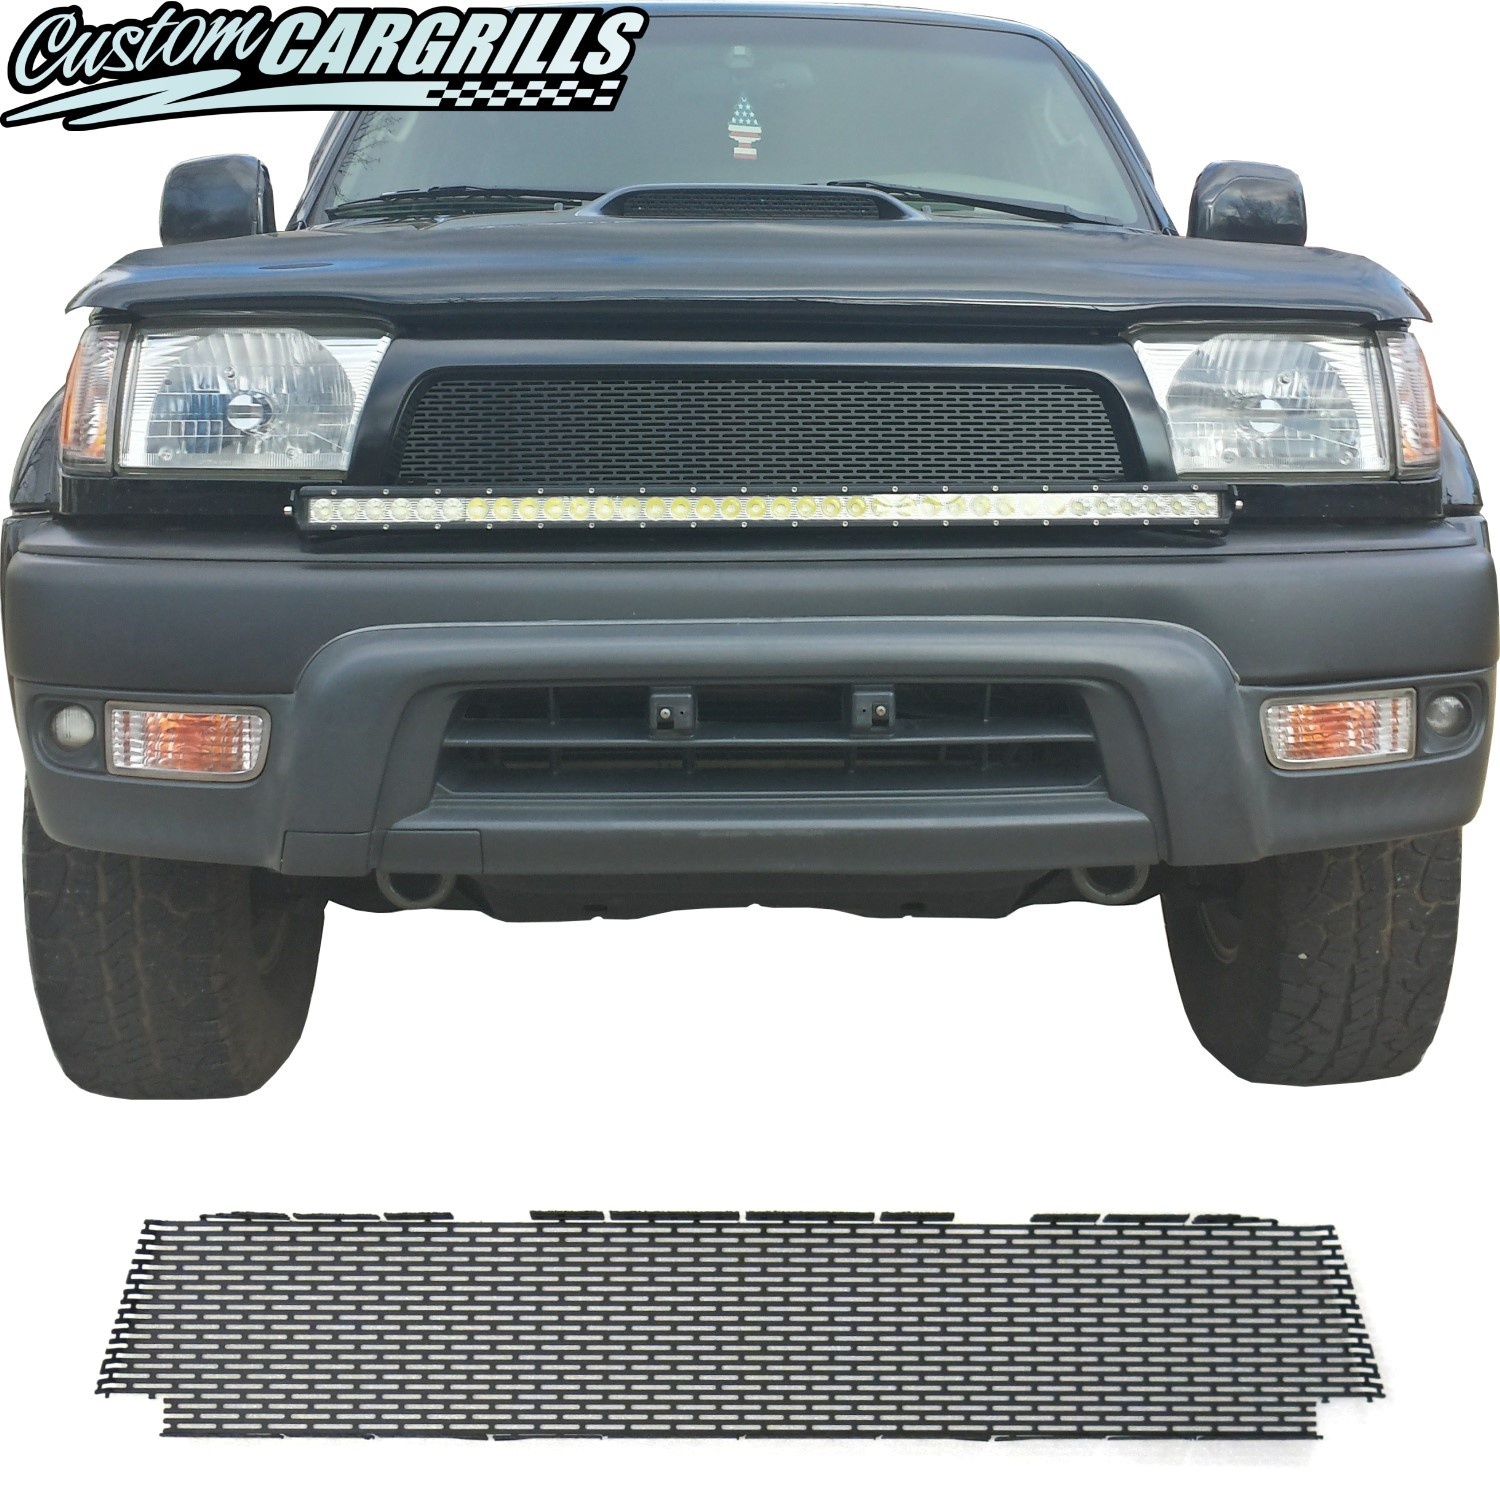 1996-98 (and 99-02*) Toyota 4Runner Grill Mesh